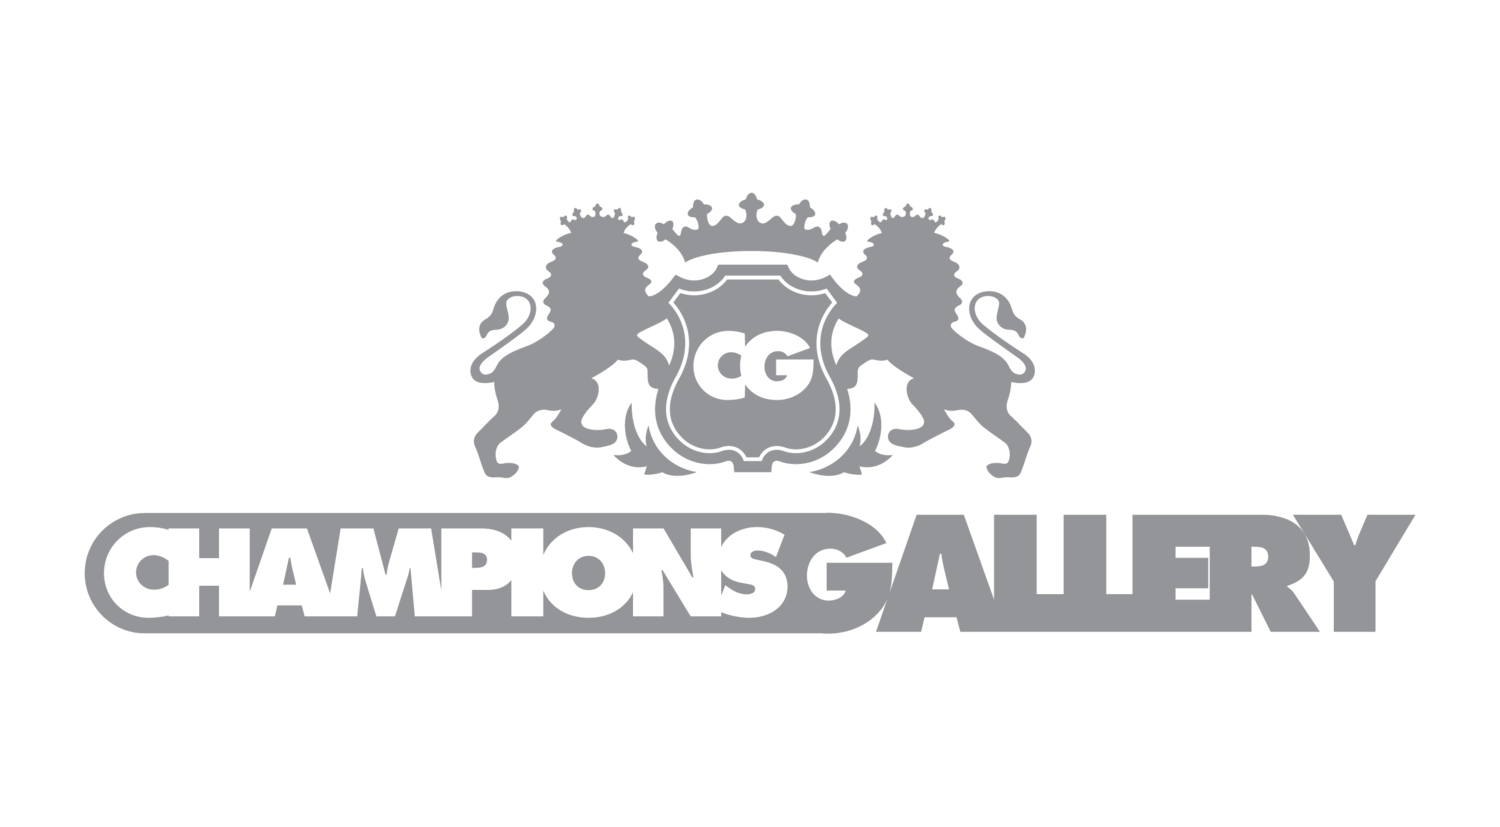 THE CHAMPIONS GALLERY